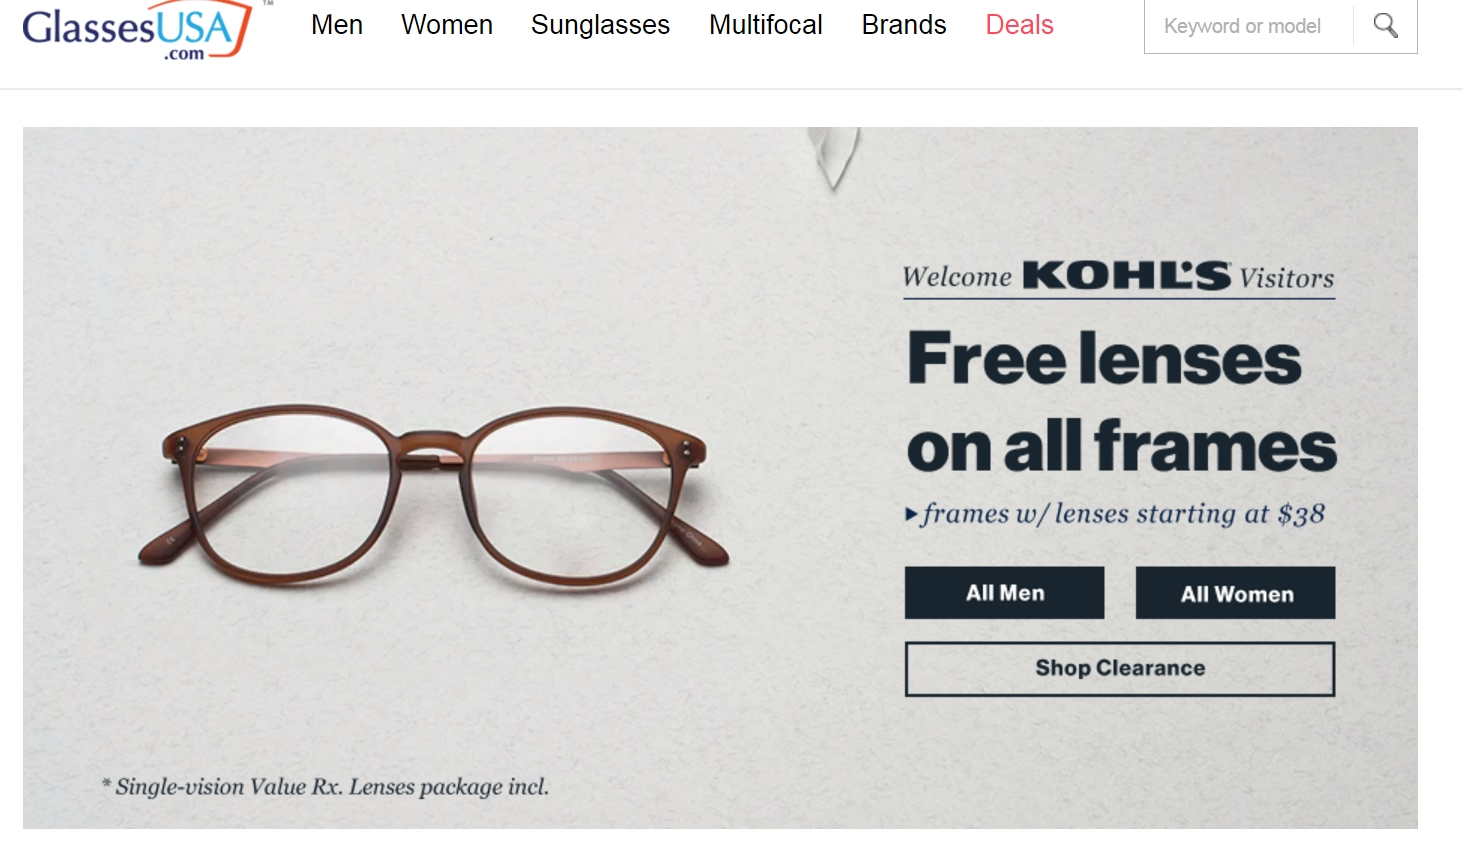 Frame usa coupon code free shipping : Bank of america deals for checking